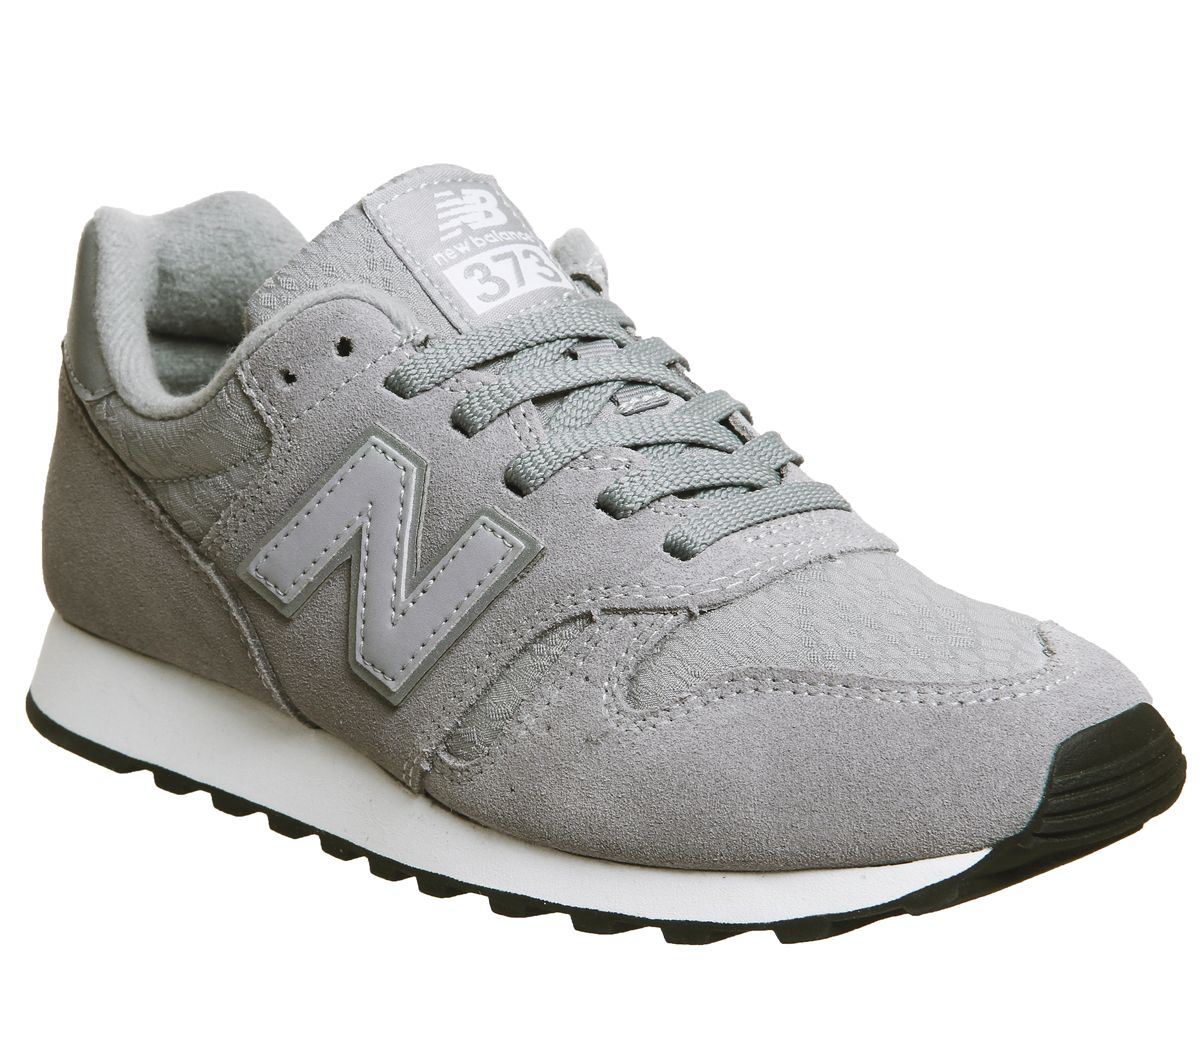 cheap for discount 41e99 62586 New Balance 373 Trainers Grey Lace - Hers trainers